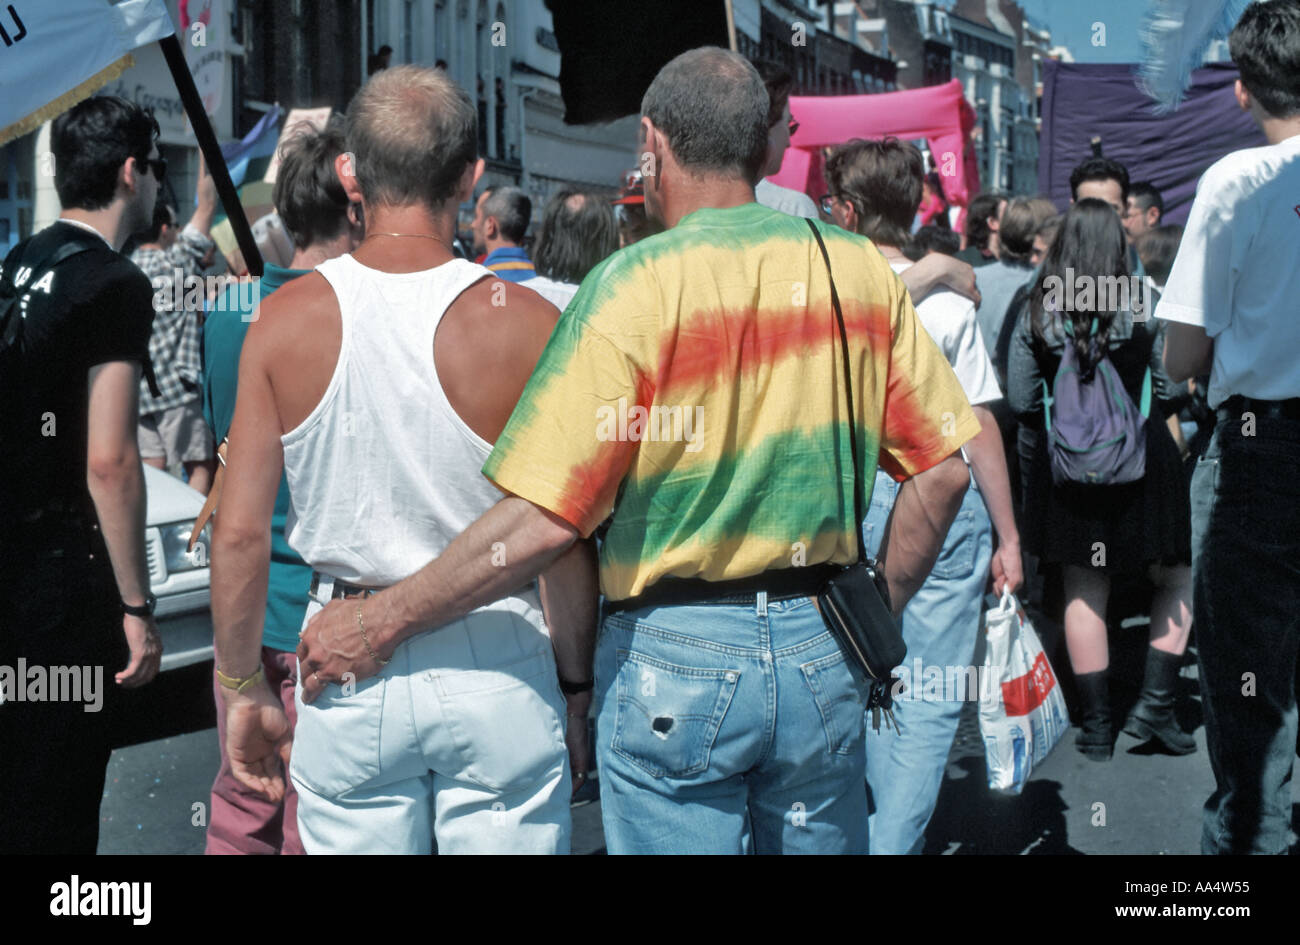 LILLE France, Male Gay Couple Marching  'Gay Pride' Parade Domestic Union Men From Behind - Stock Image